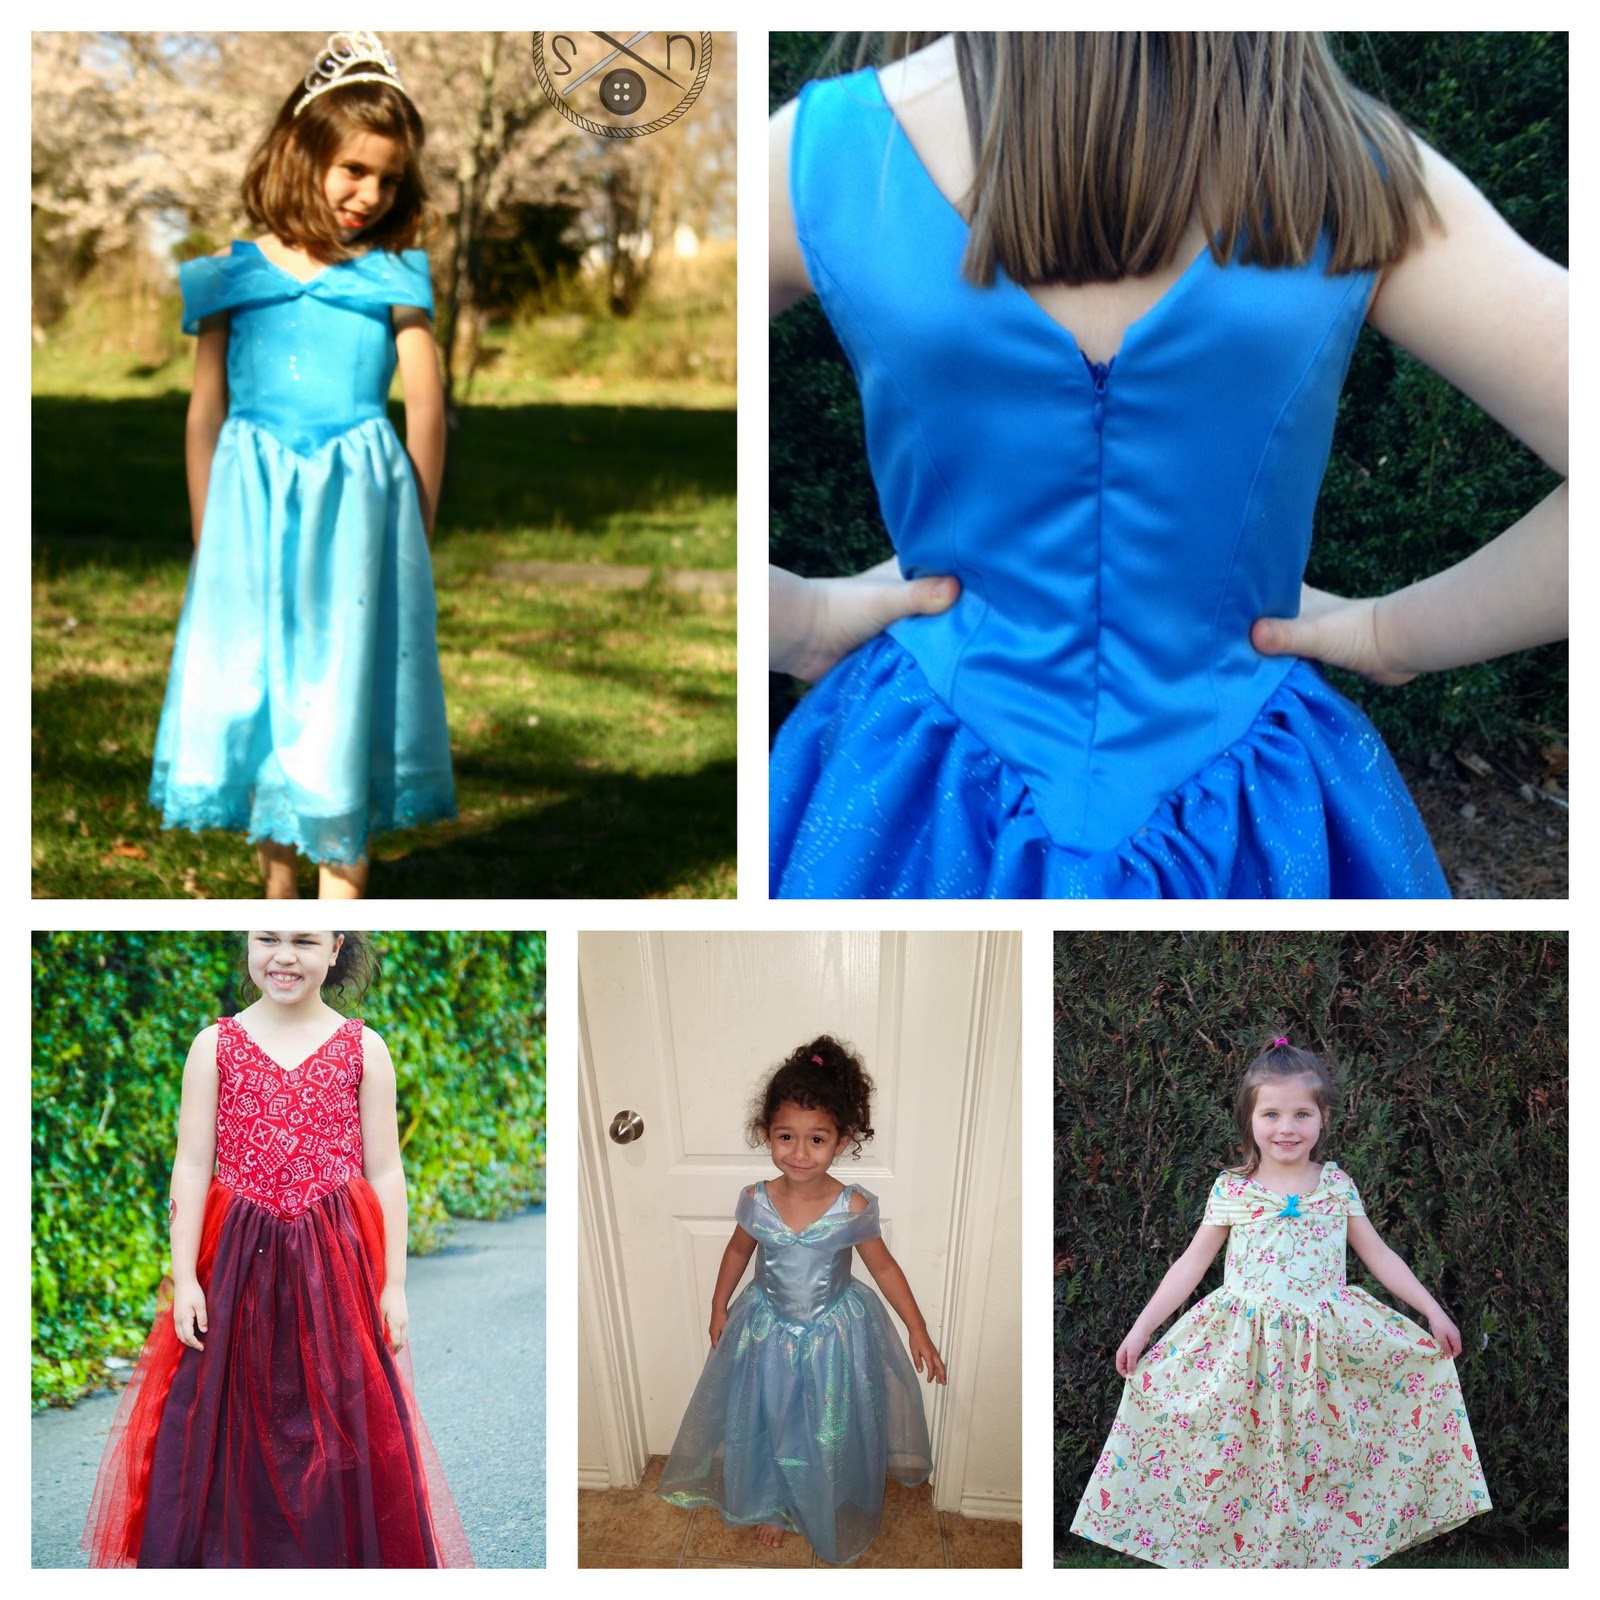 Little girls in princess party dress collage